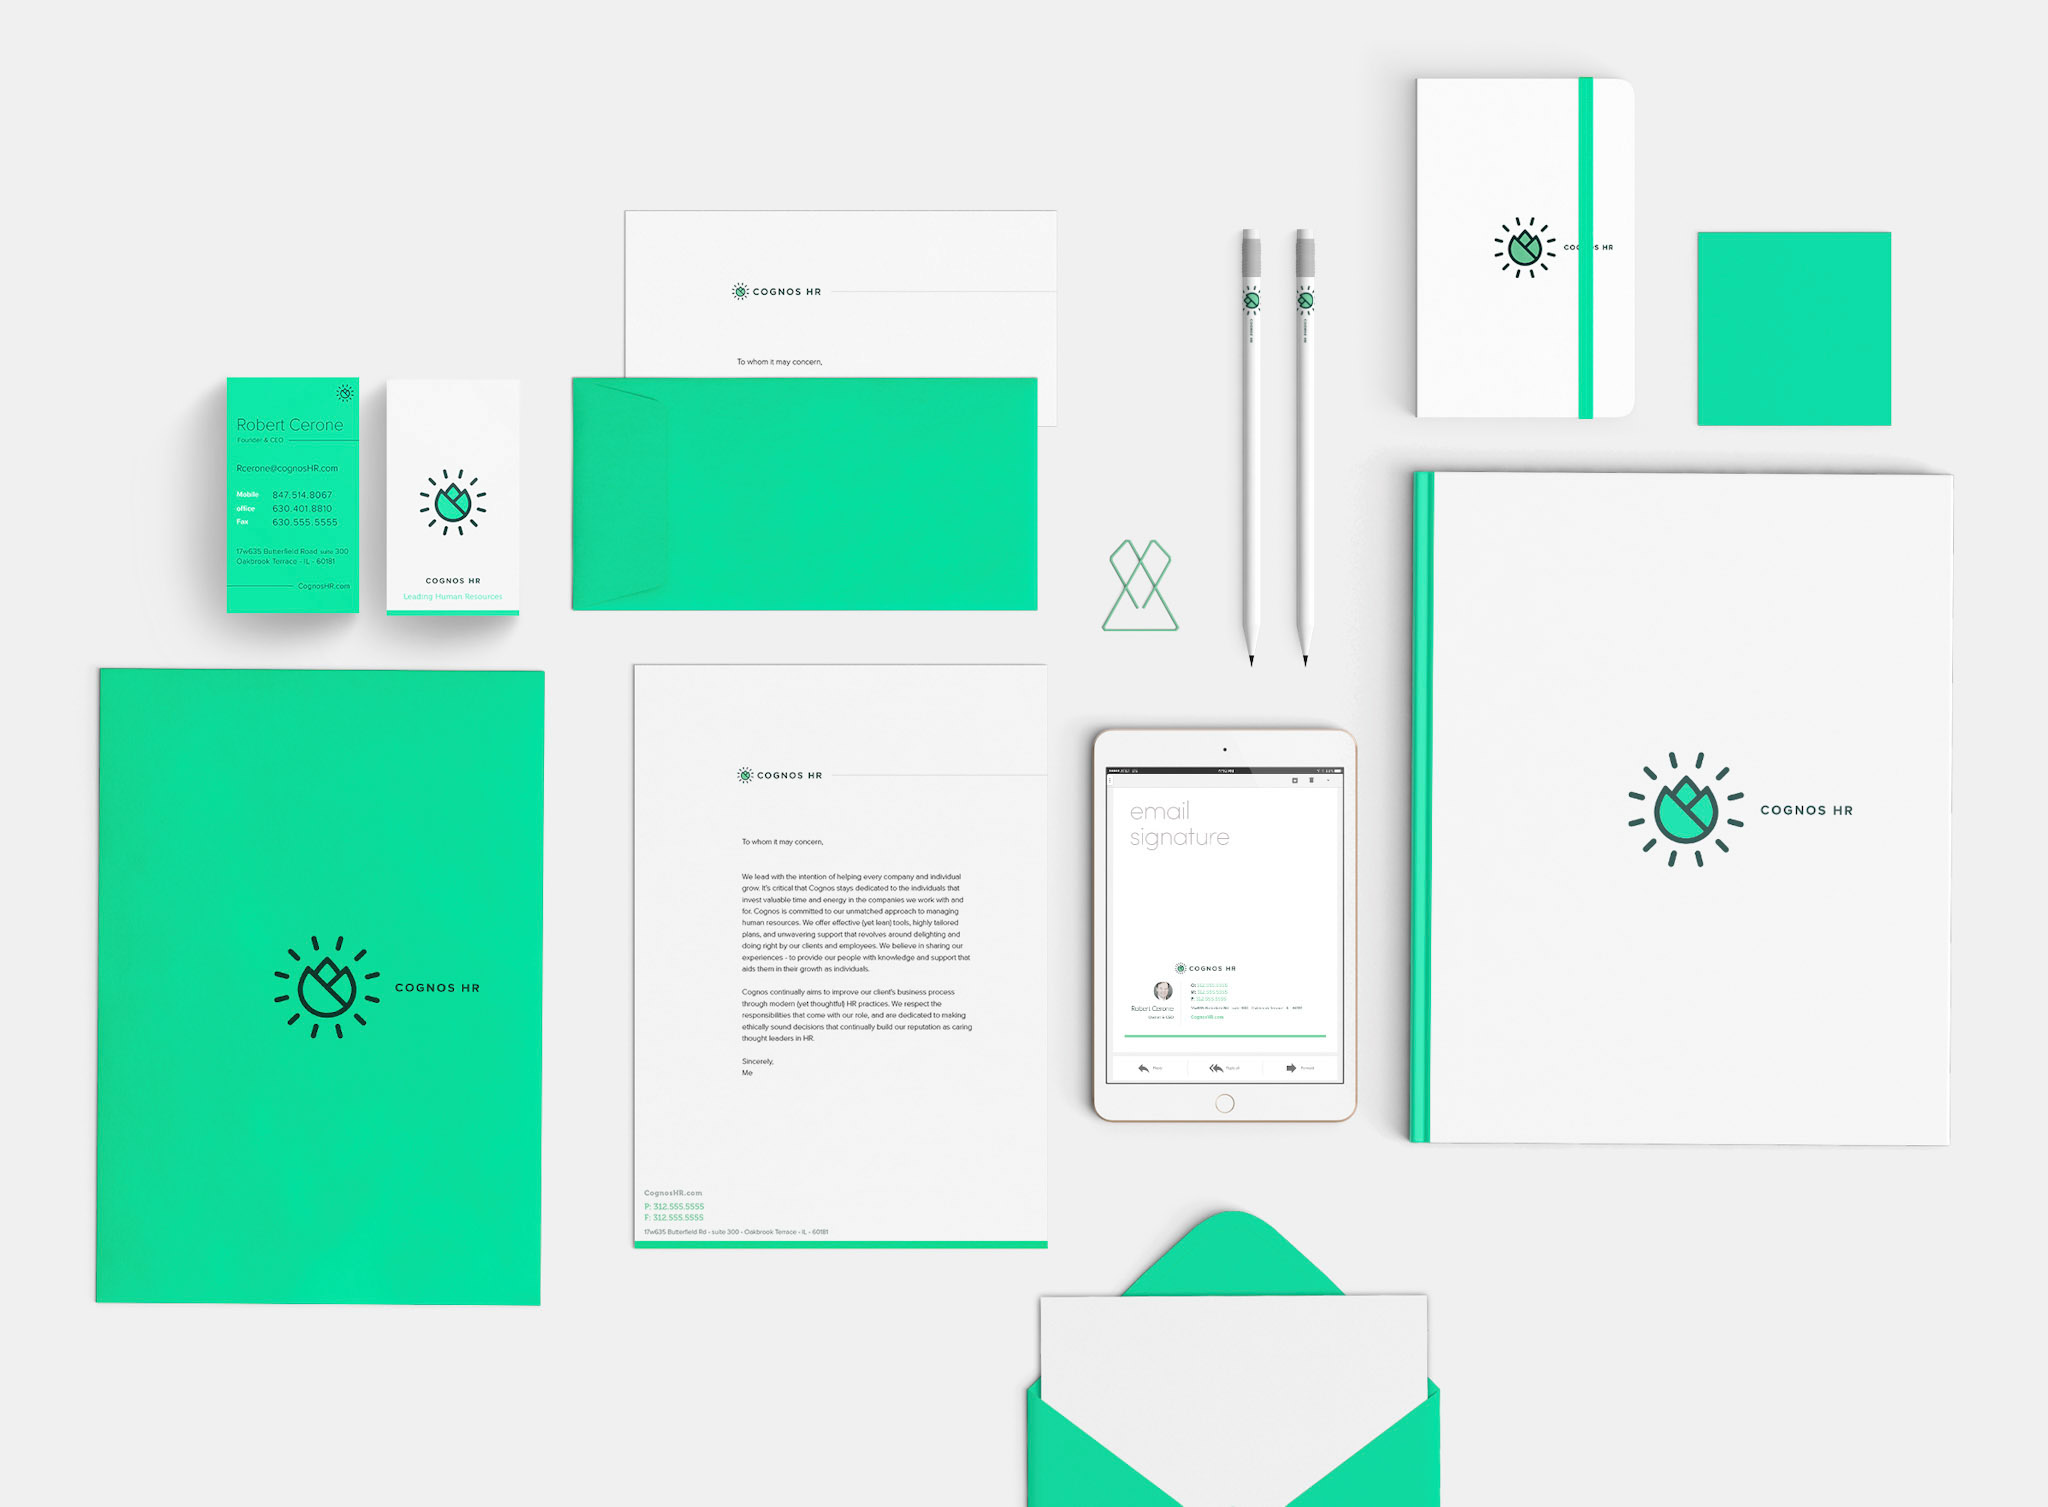 This image shows the brand stationery. It includes: business cards. envelopes, folders, sketchbook, notebooks, & email signature.